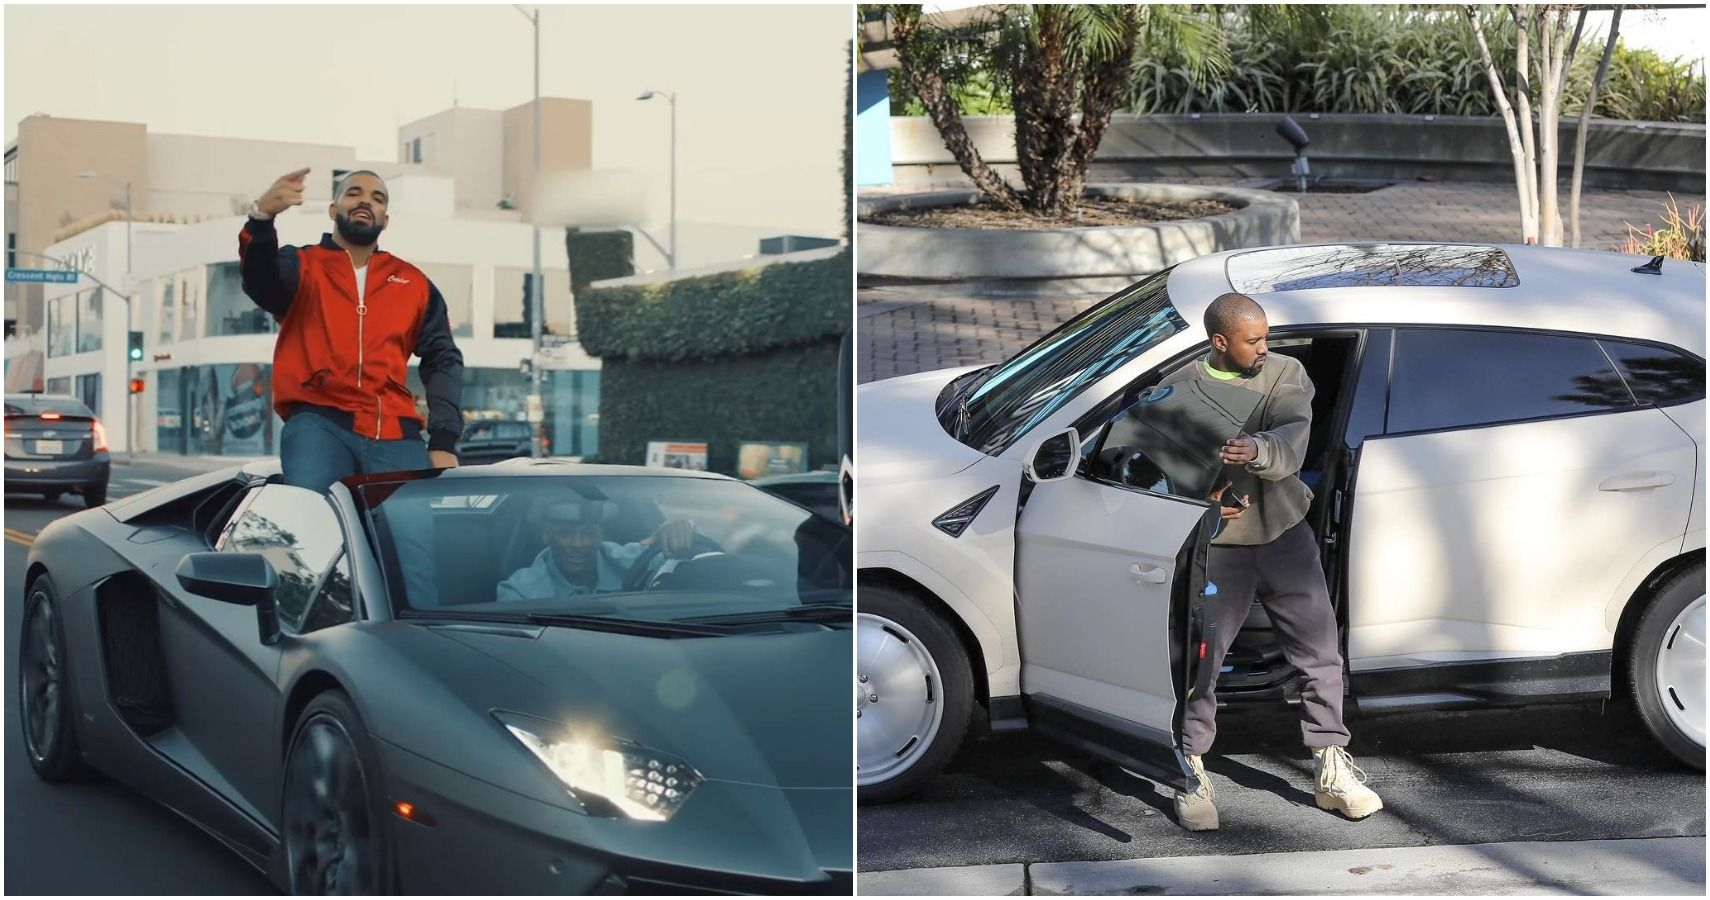 Kanye West Vs Drake: Which Rapper Has The Better Car Collection?